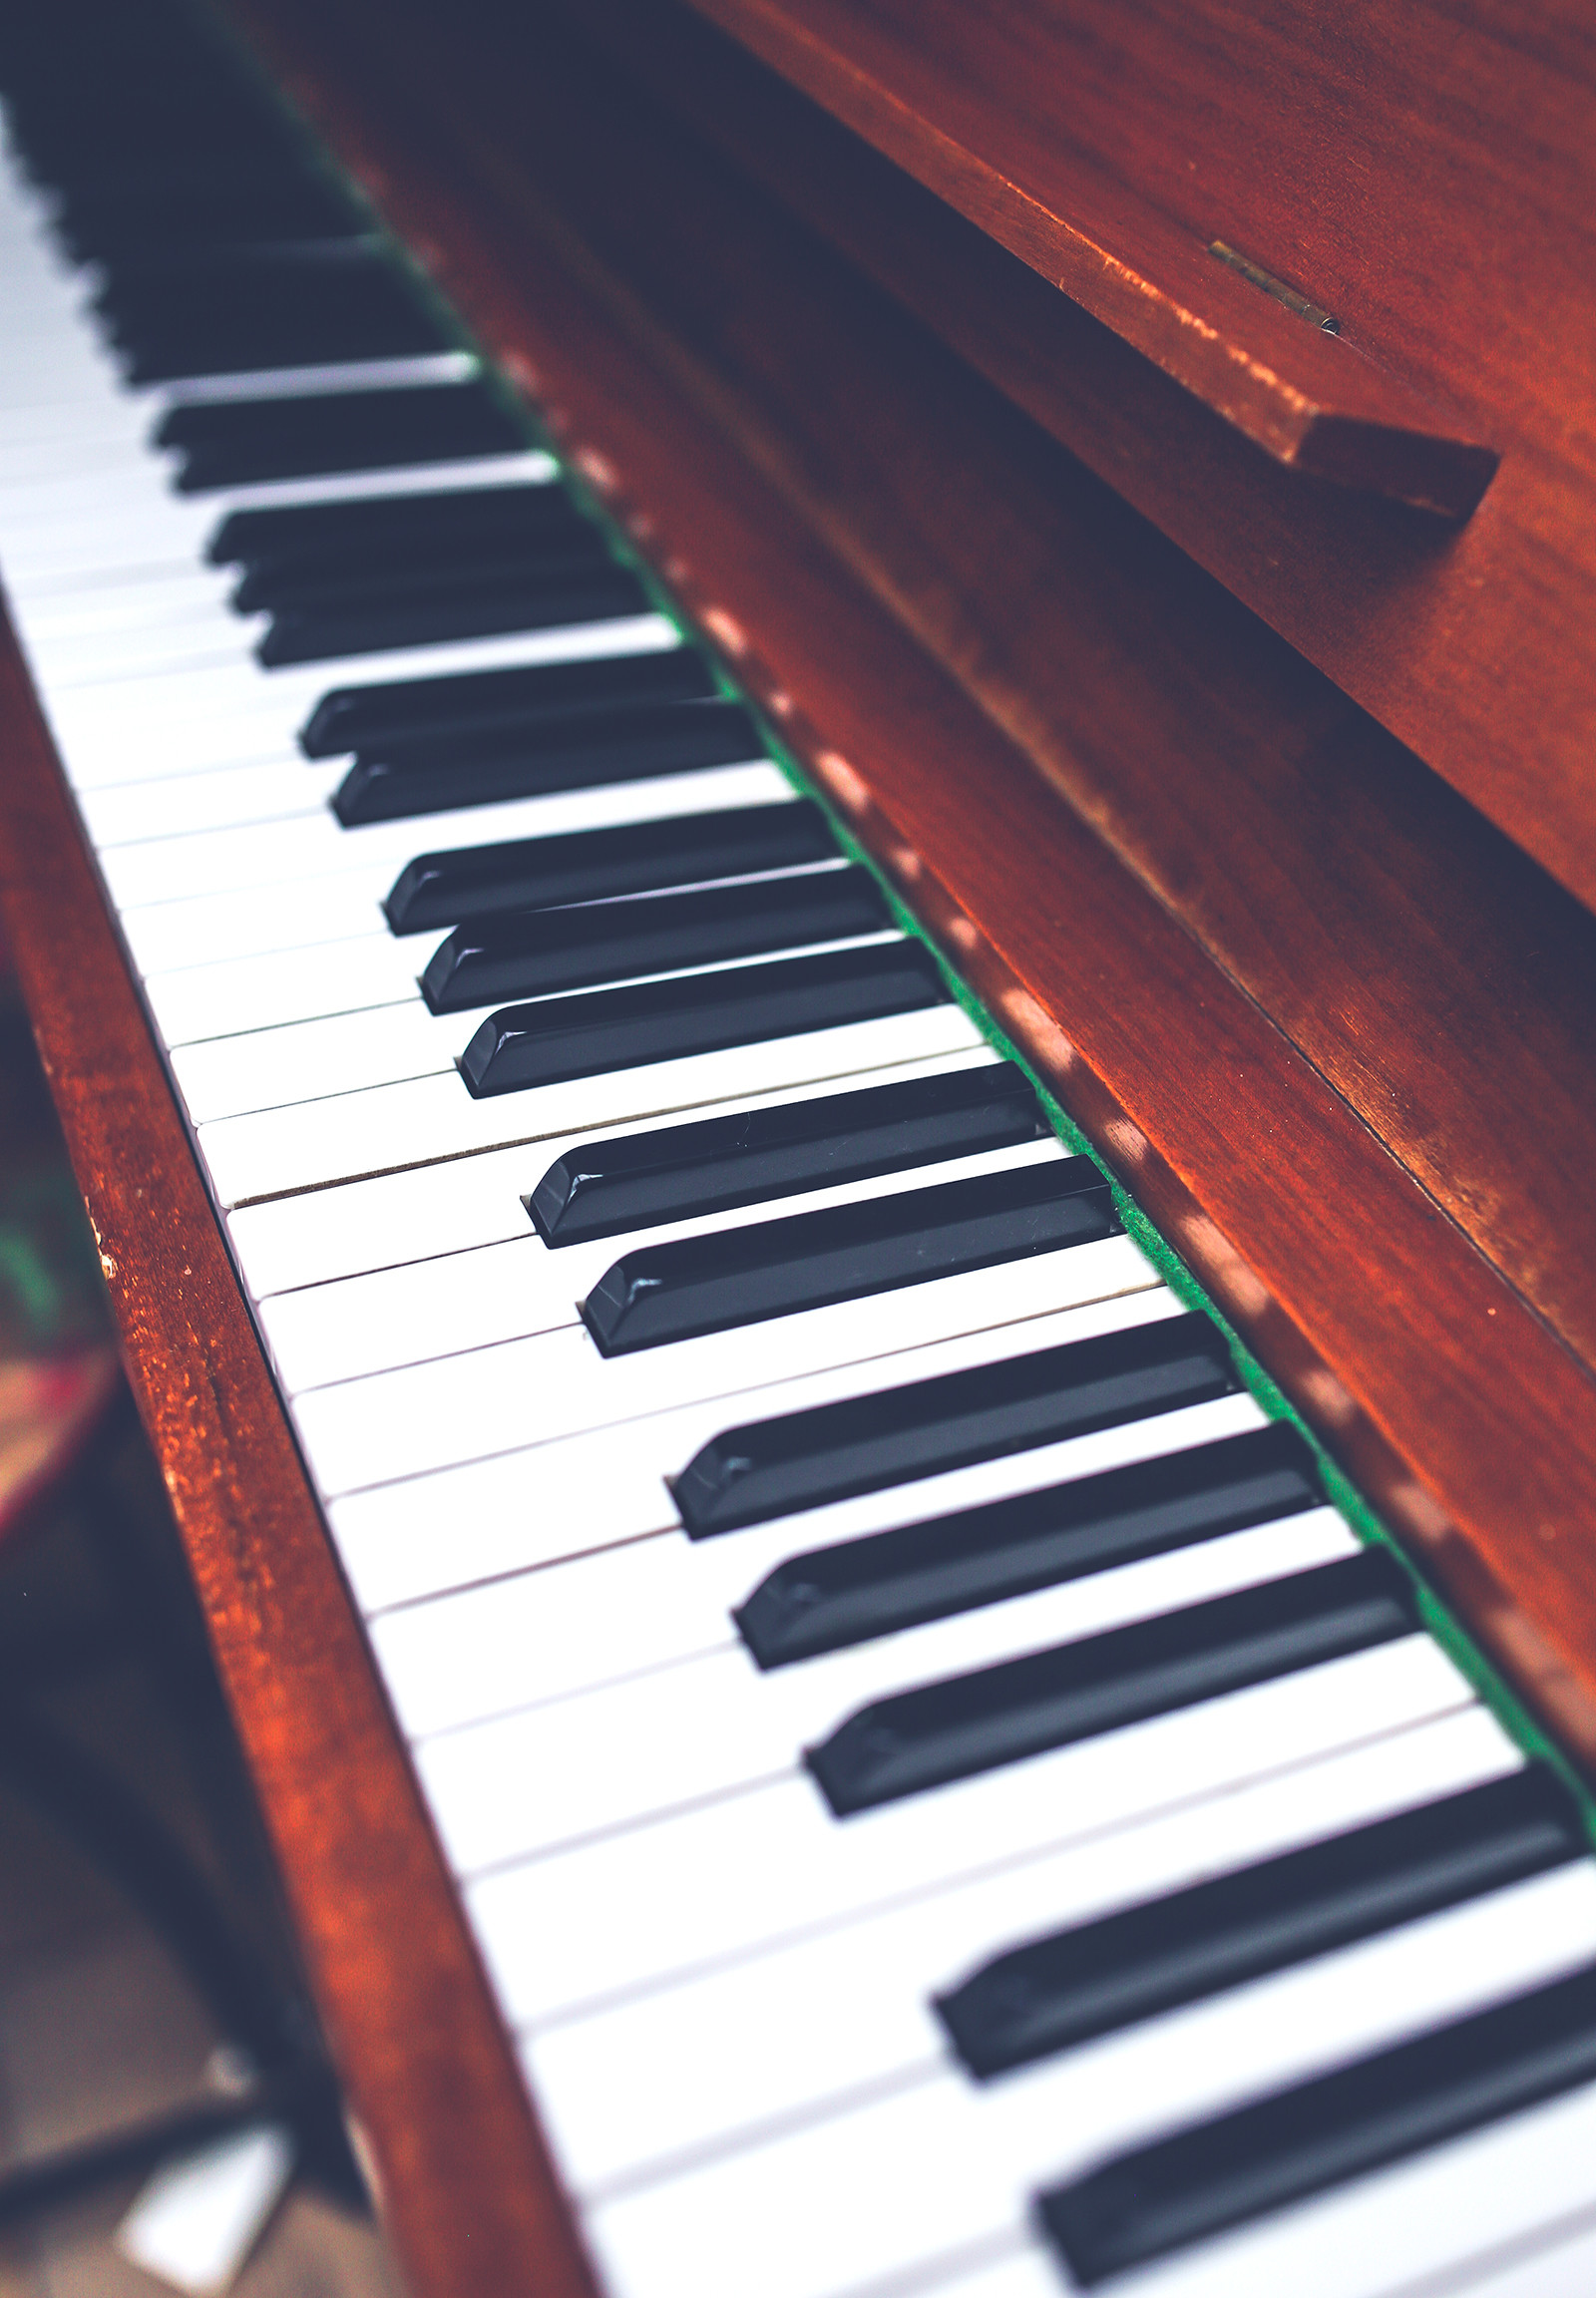 Piano Keys Background HD Wallpapers Download Free Images Wallpaper [1000image.com]